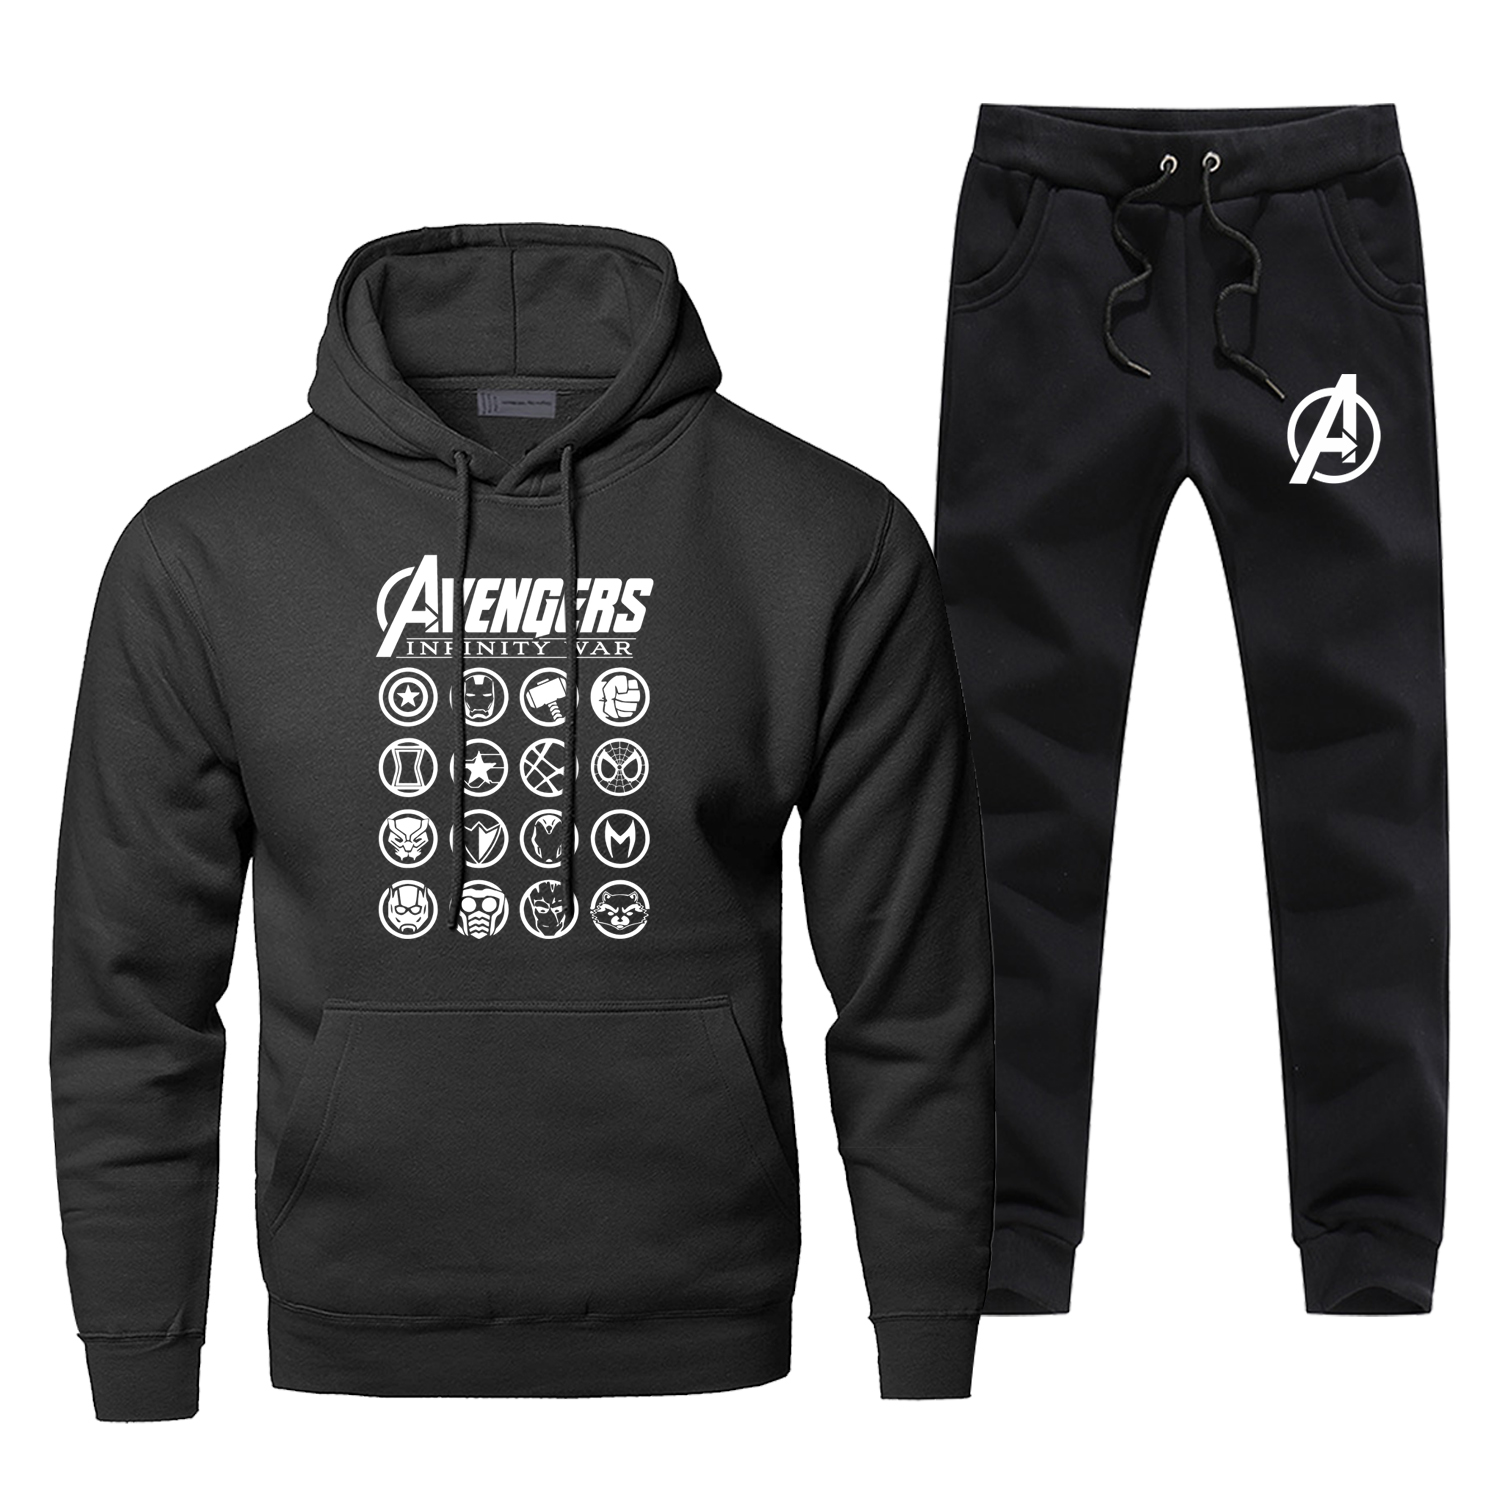 The Avengers Fashion Desgin Men's Sets Casual Fleece Iron Man Men's Full Suit Tracksuit Fitness Avenger Endgame Sportsman Wear